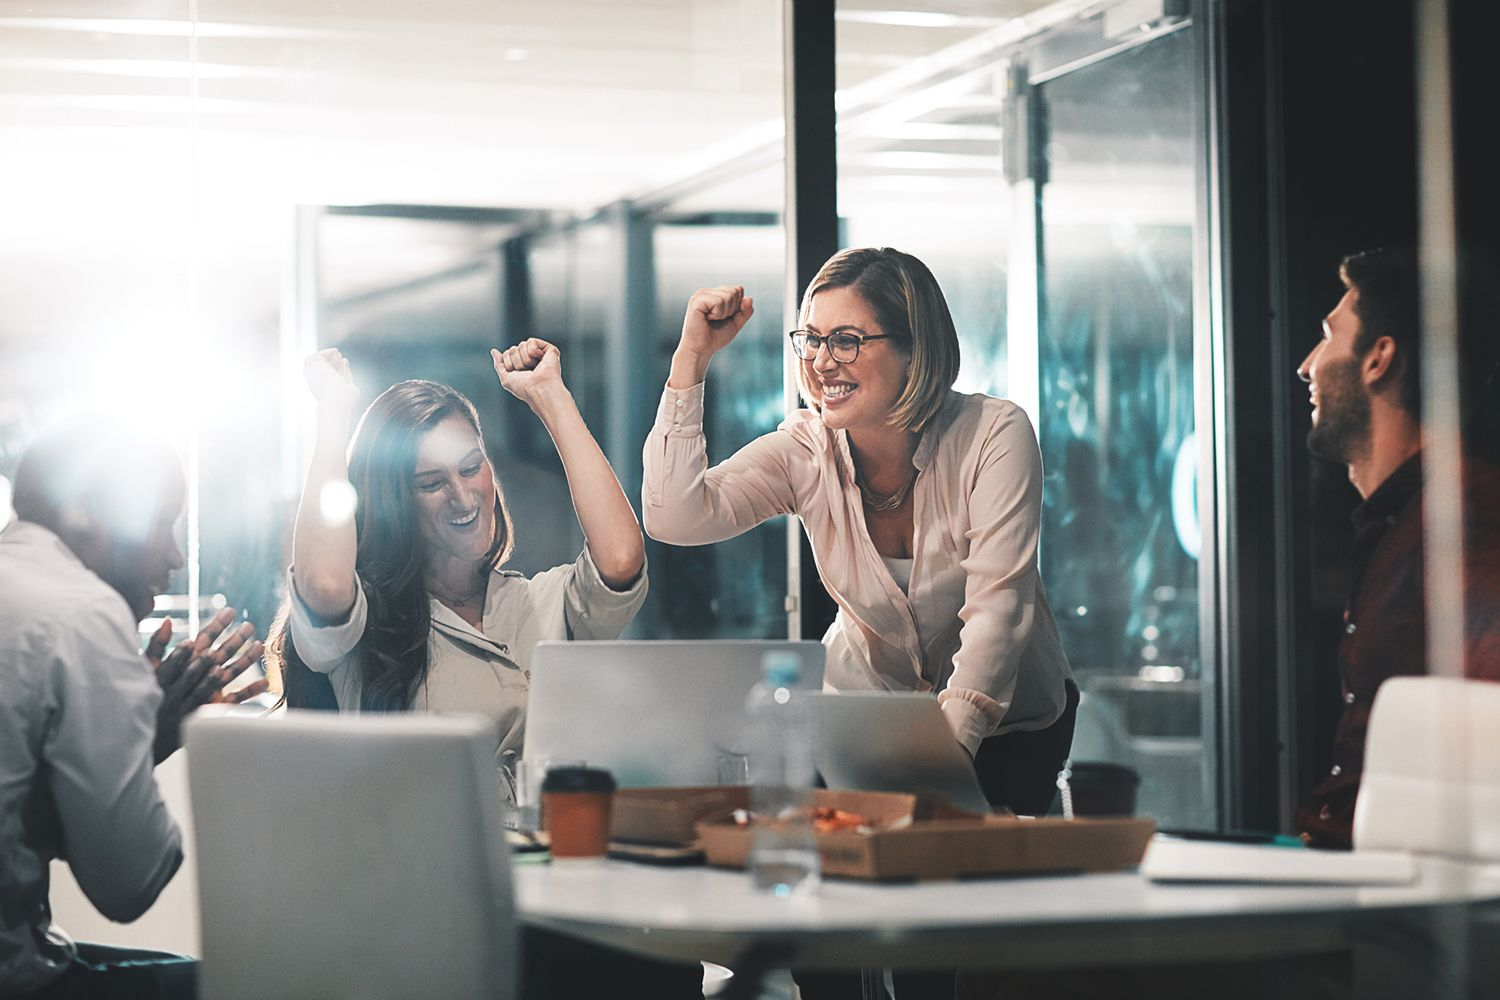 Team of co-workers celebrating in conference room